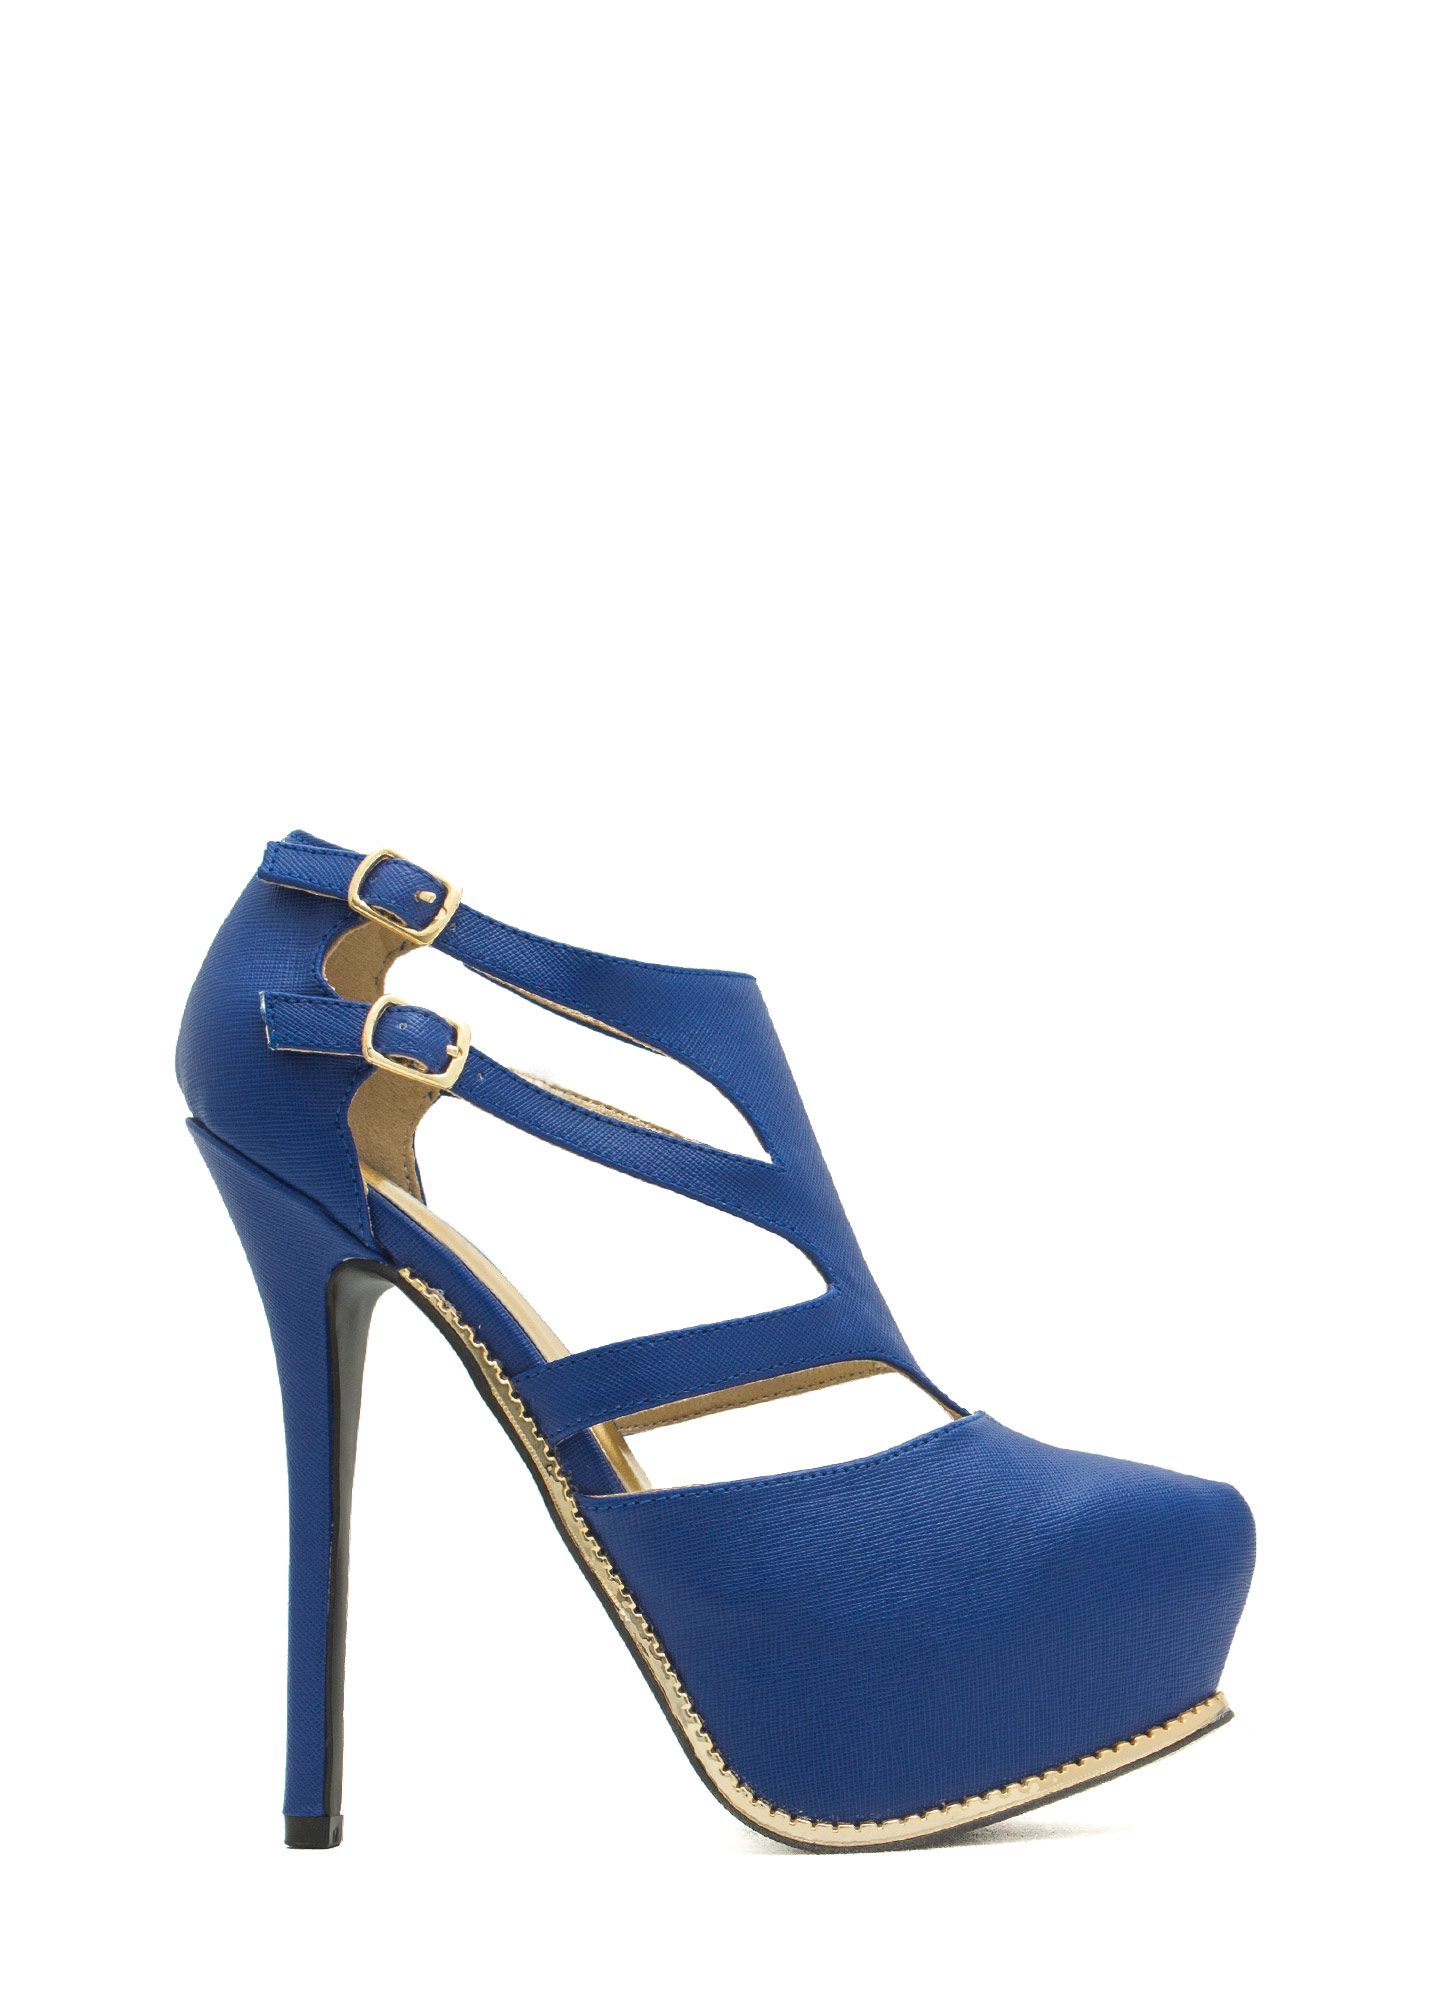 Textured Toothsome Strappy Platforms COBALT